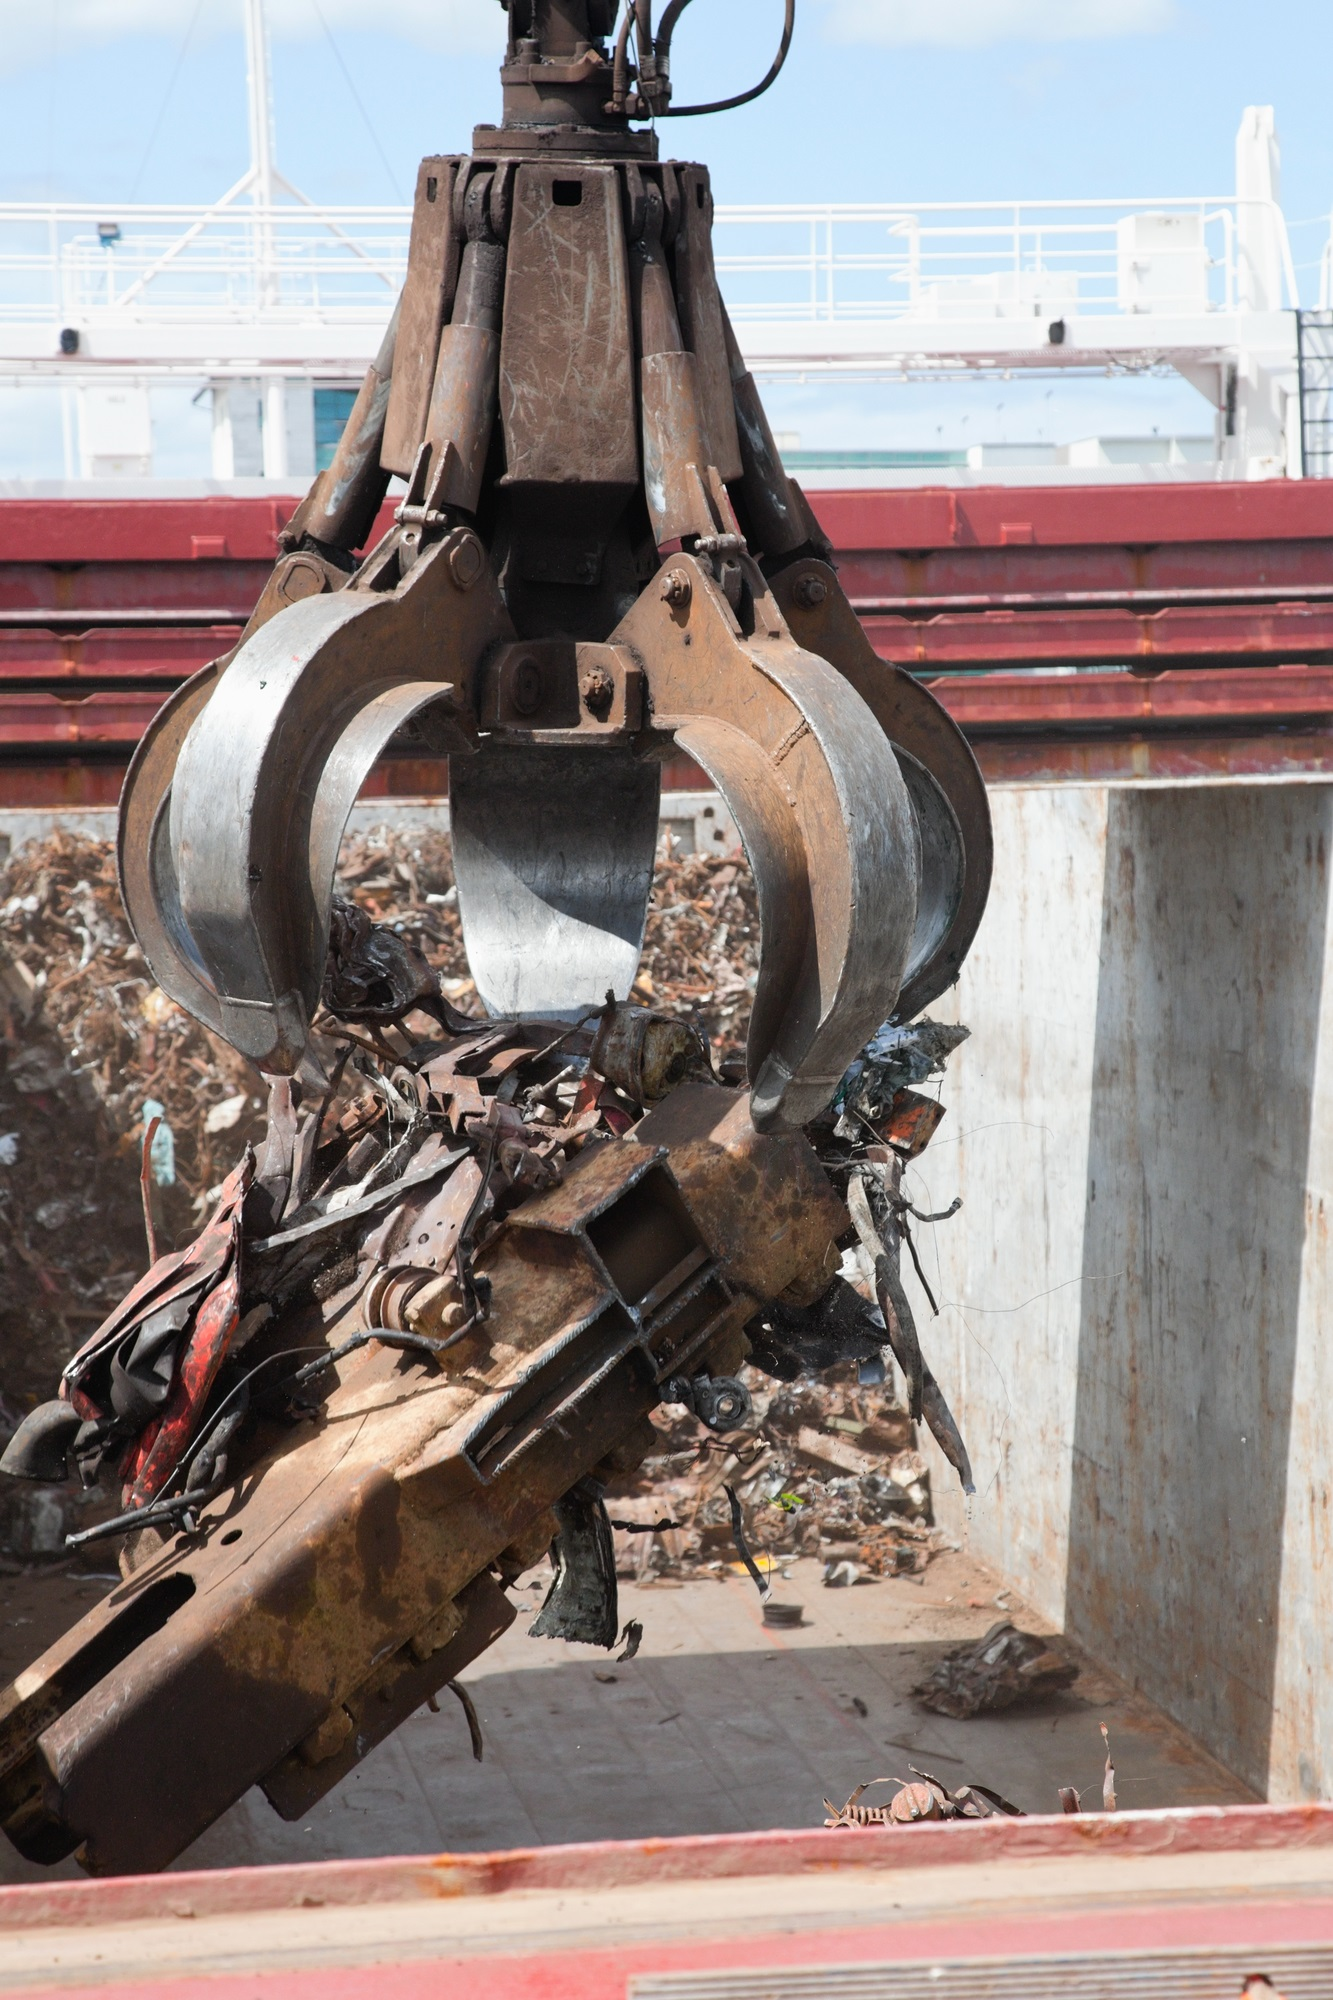 3 Surprising Facts About Scrap Metal Recycling - Byer Steel